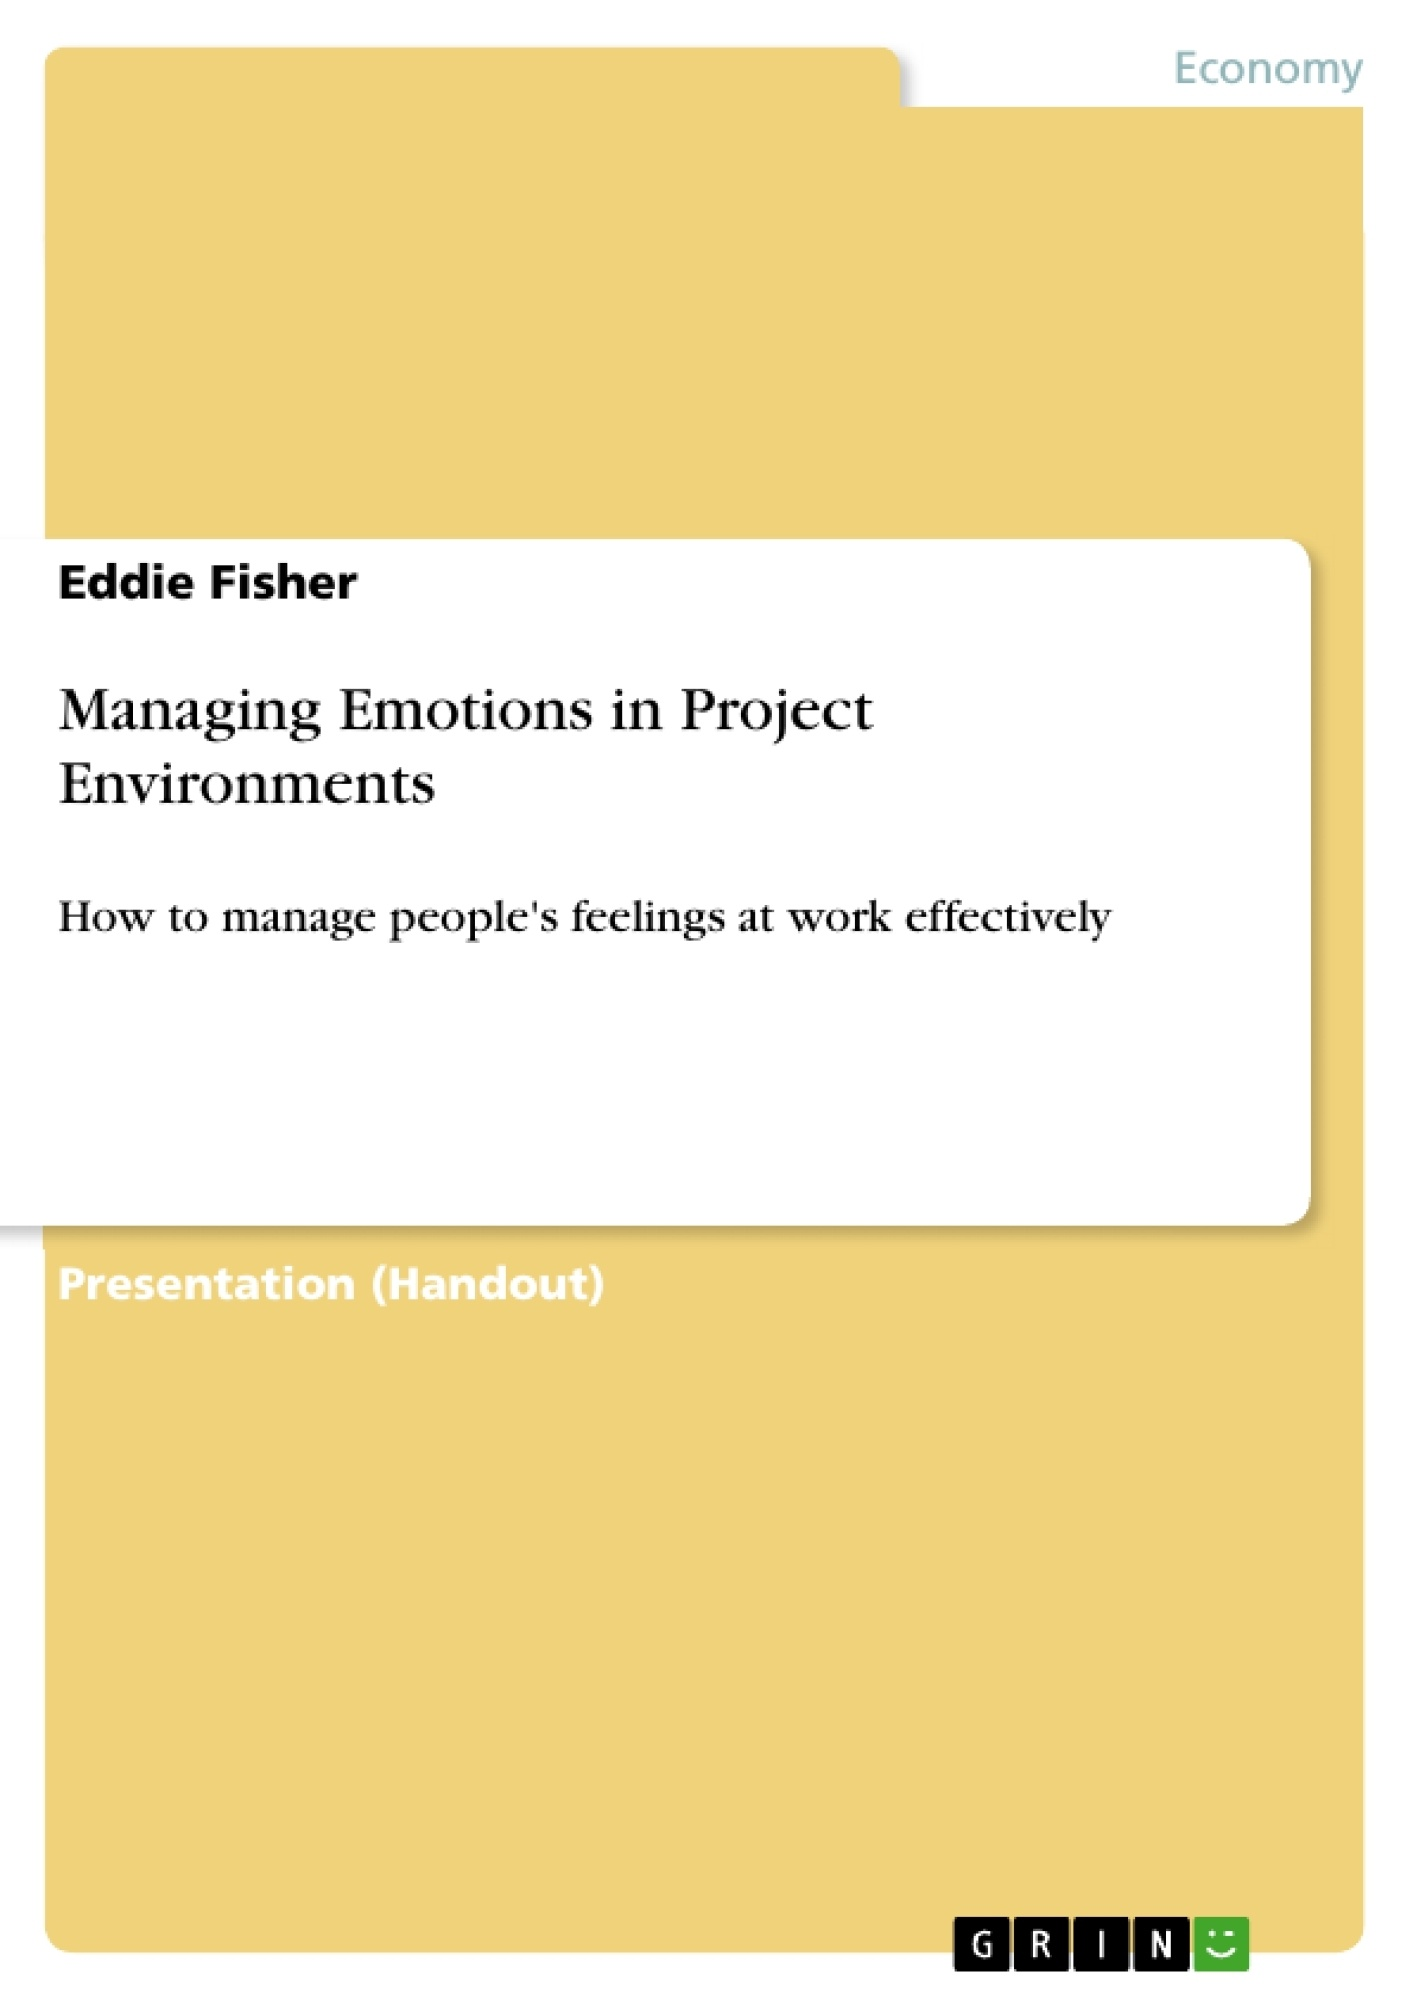 Title: Managing Emotions in Project Environments